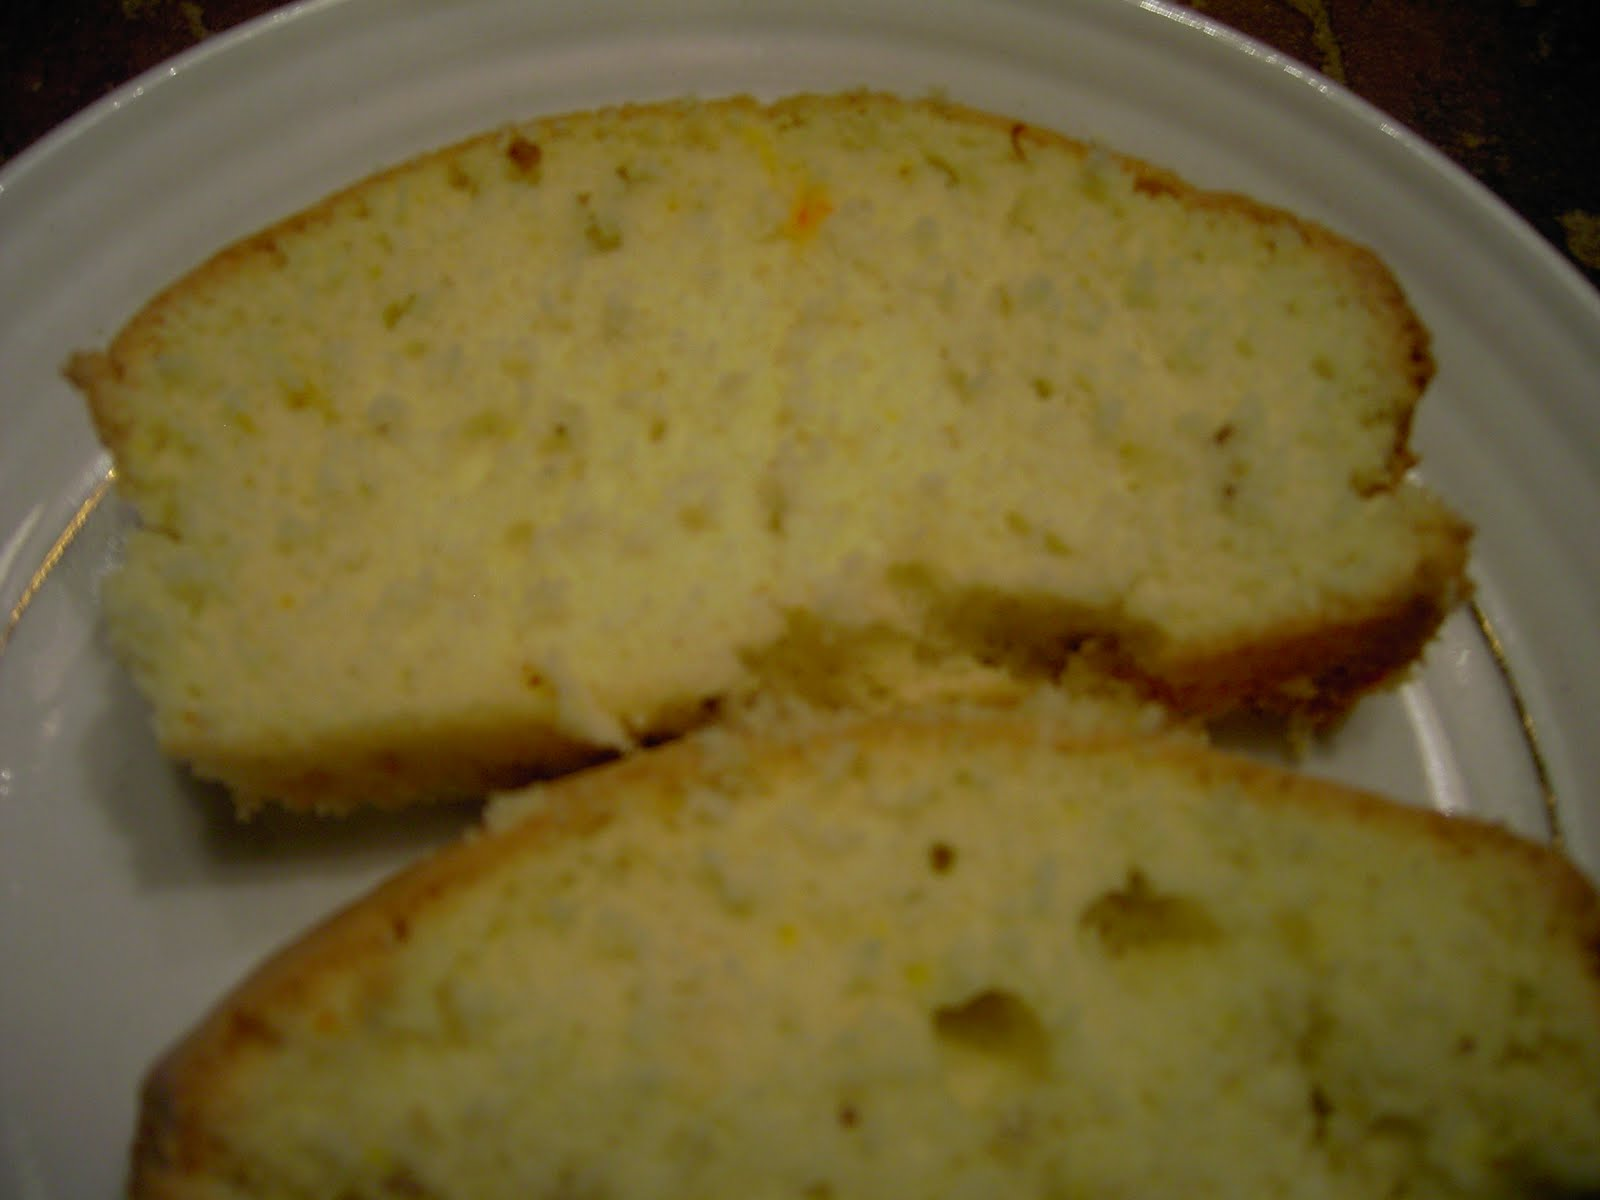 Enjoy Indian Food: Cardamom-Saffron Pound Cake